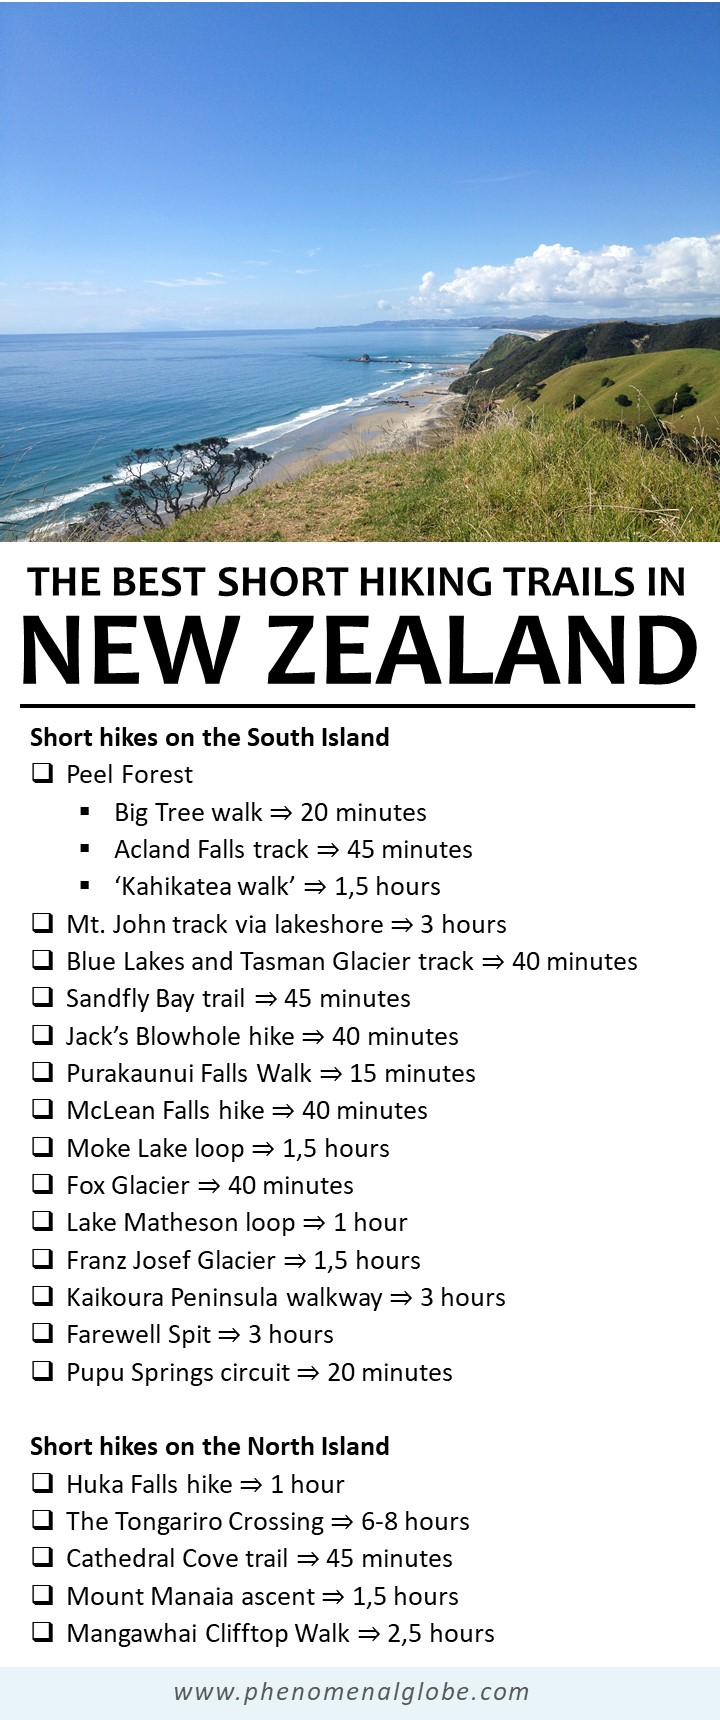 The best short hiking trails in New Zealand on the North and South Island. #NewZealand #Hiking #Tramping